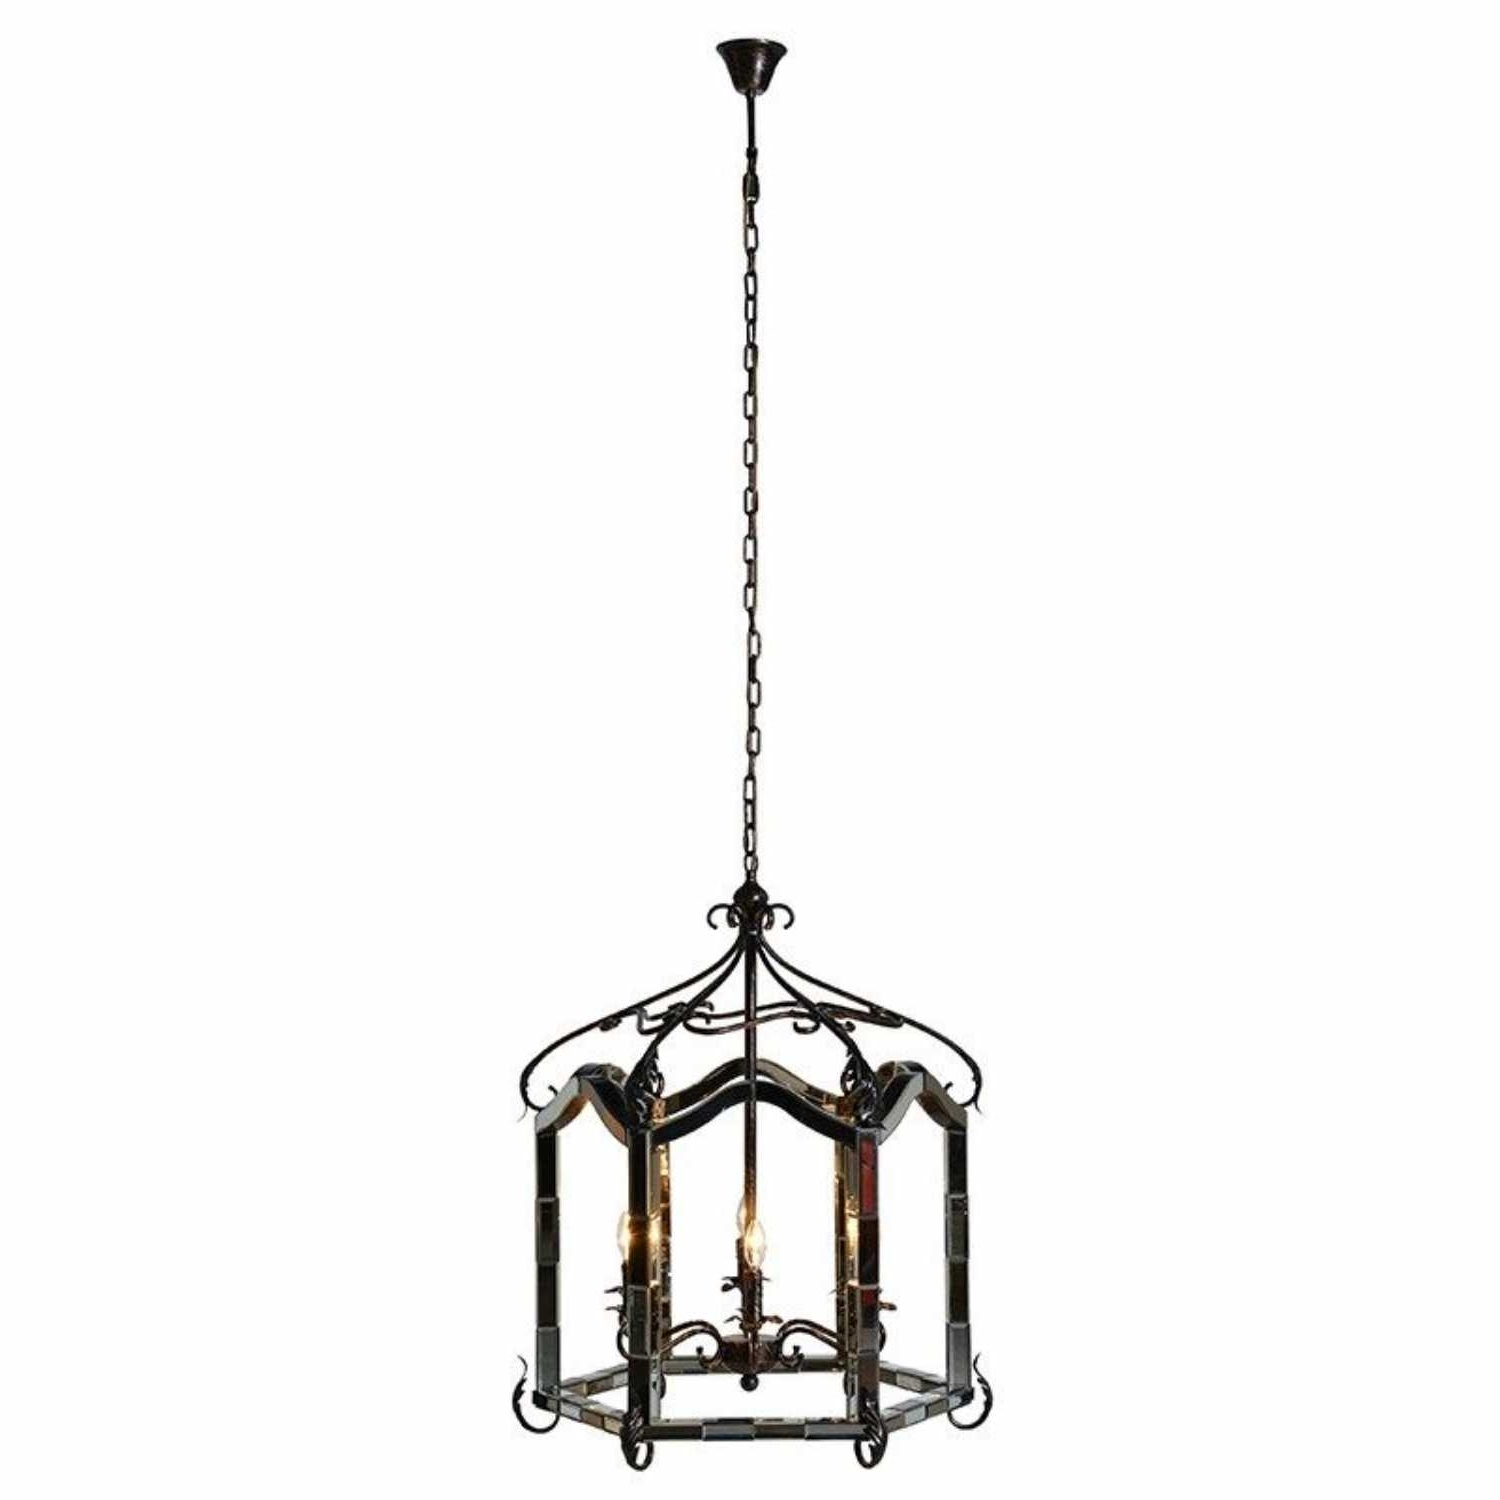 Vintage Style Venetian Mirrored Chandelier Regarding Fashionable Mirrored Chandelier (View 19 of 20)